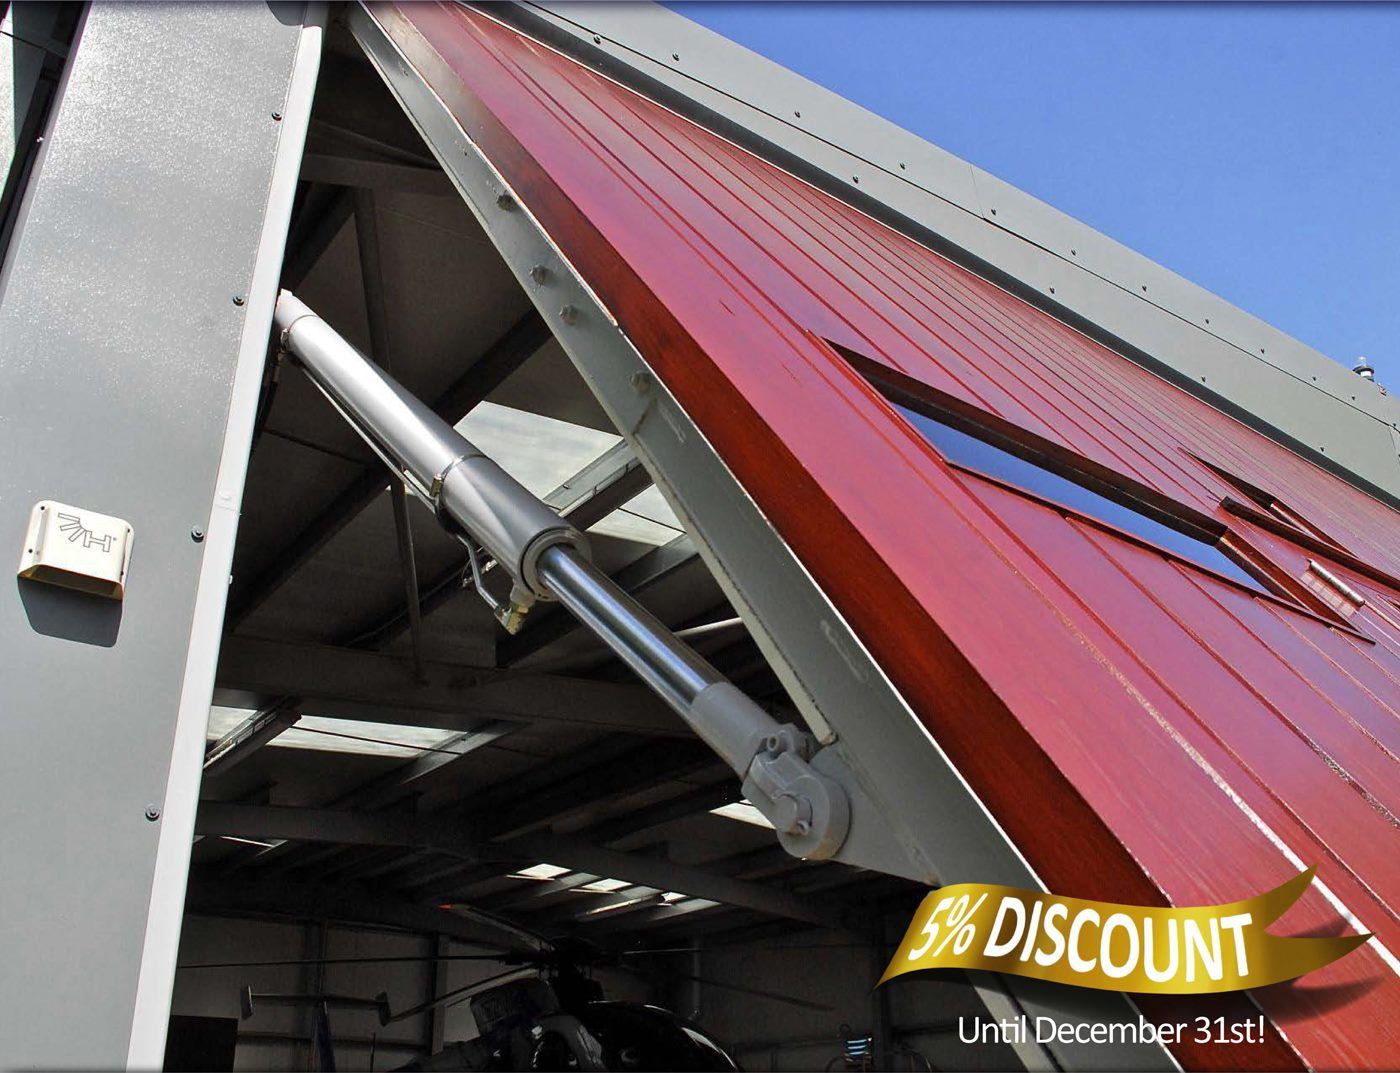 hydroswing helicopter hangar door five percent discount offer